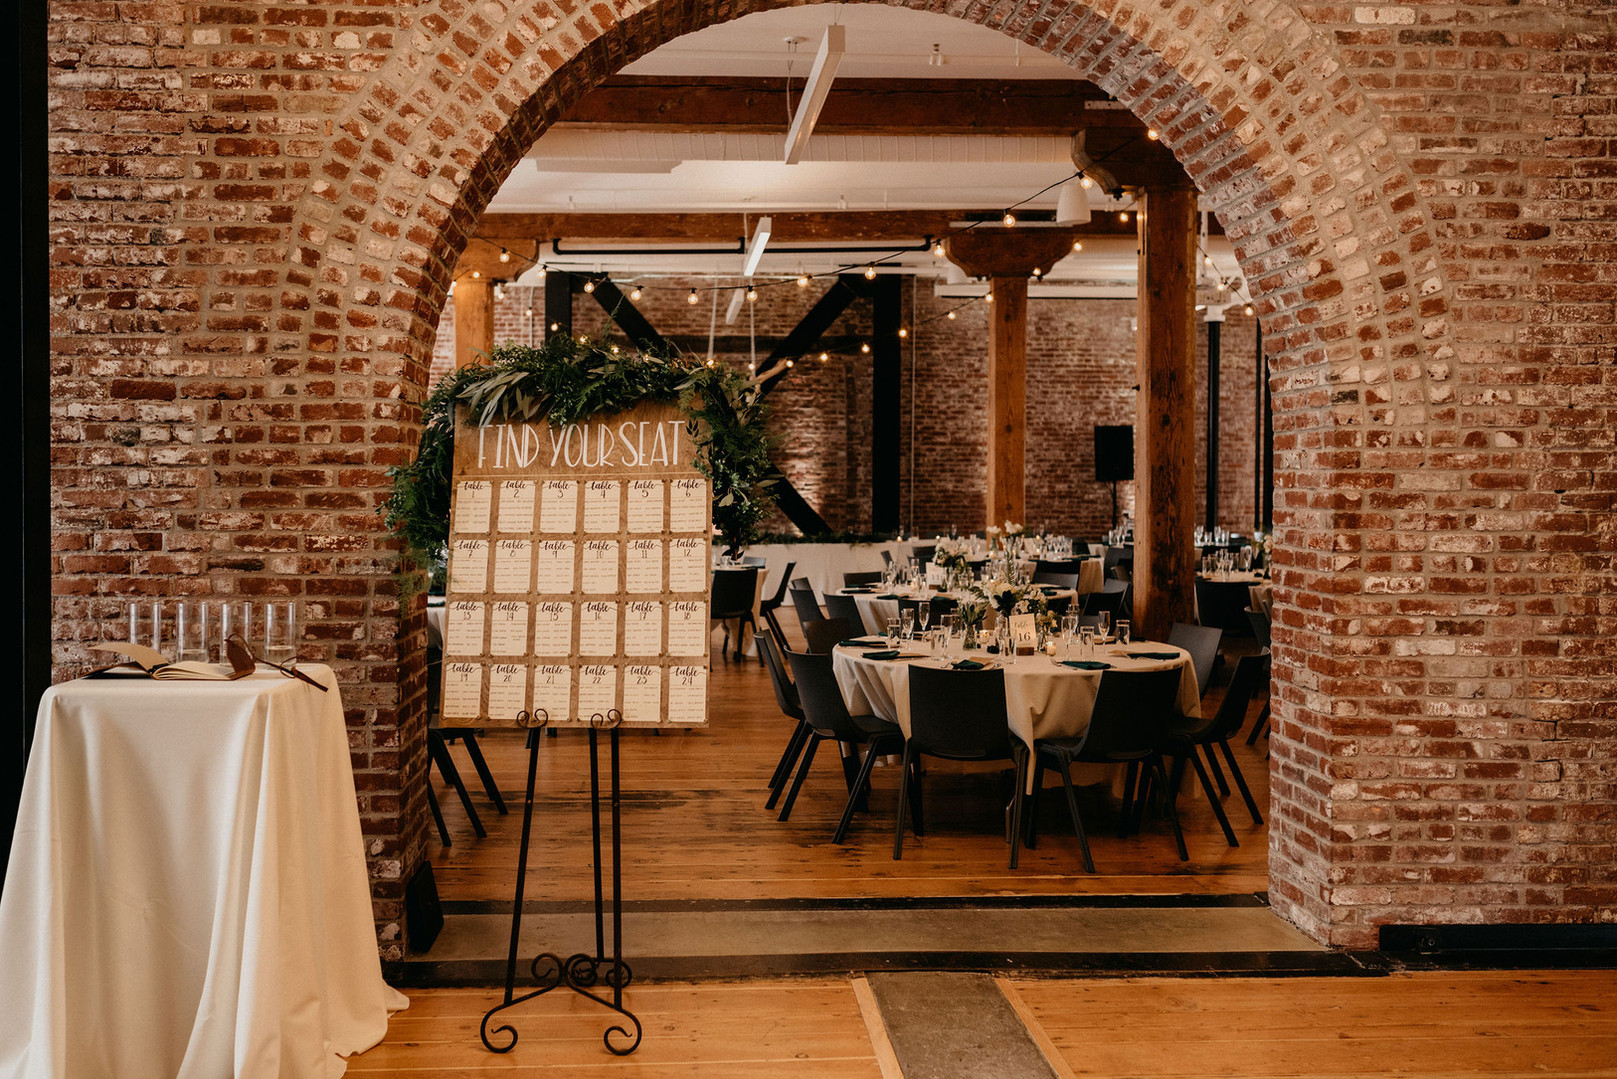 Seating Chart under the Brick Archways